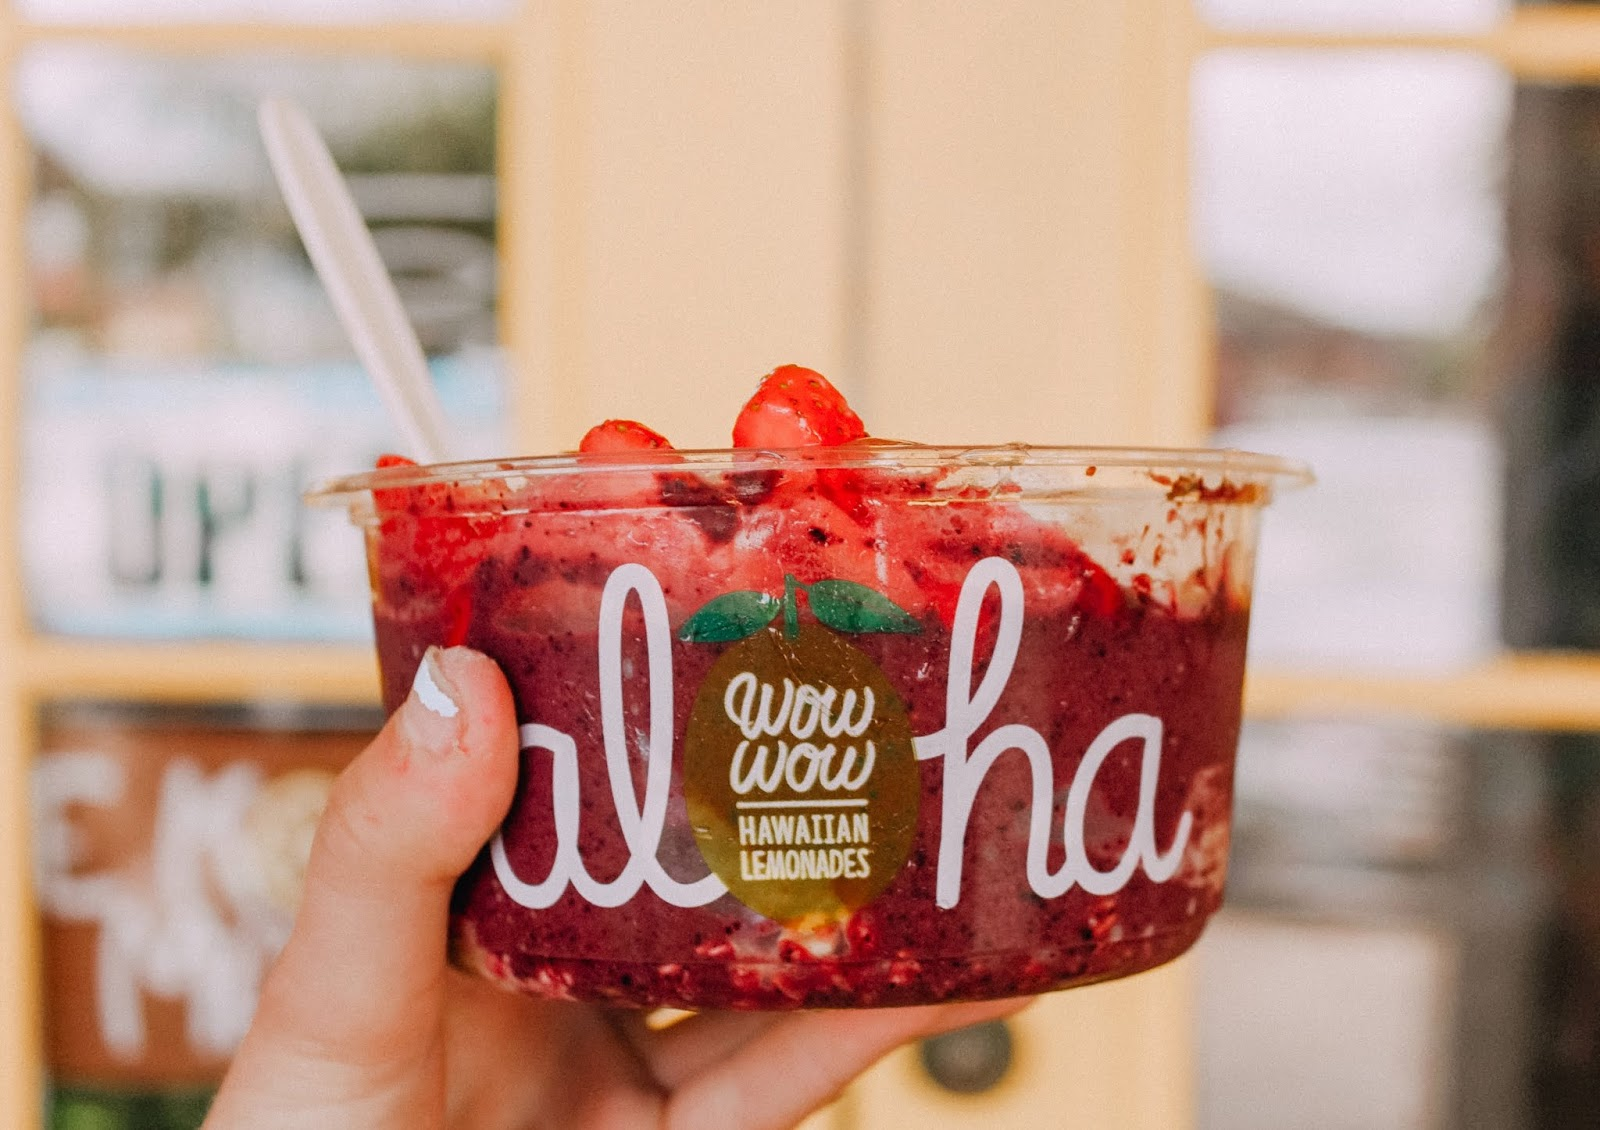 wow wow aloha lemonade acai bowl maui hawaii